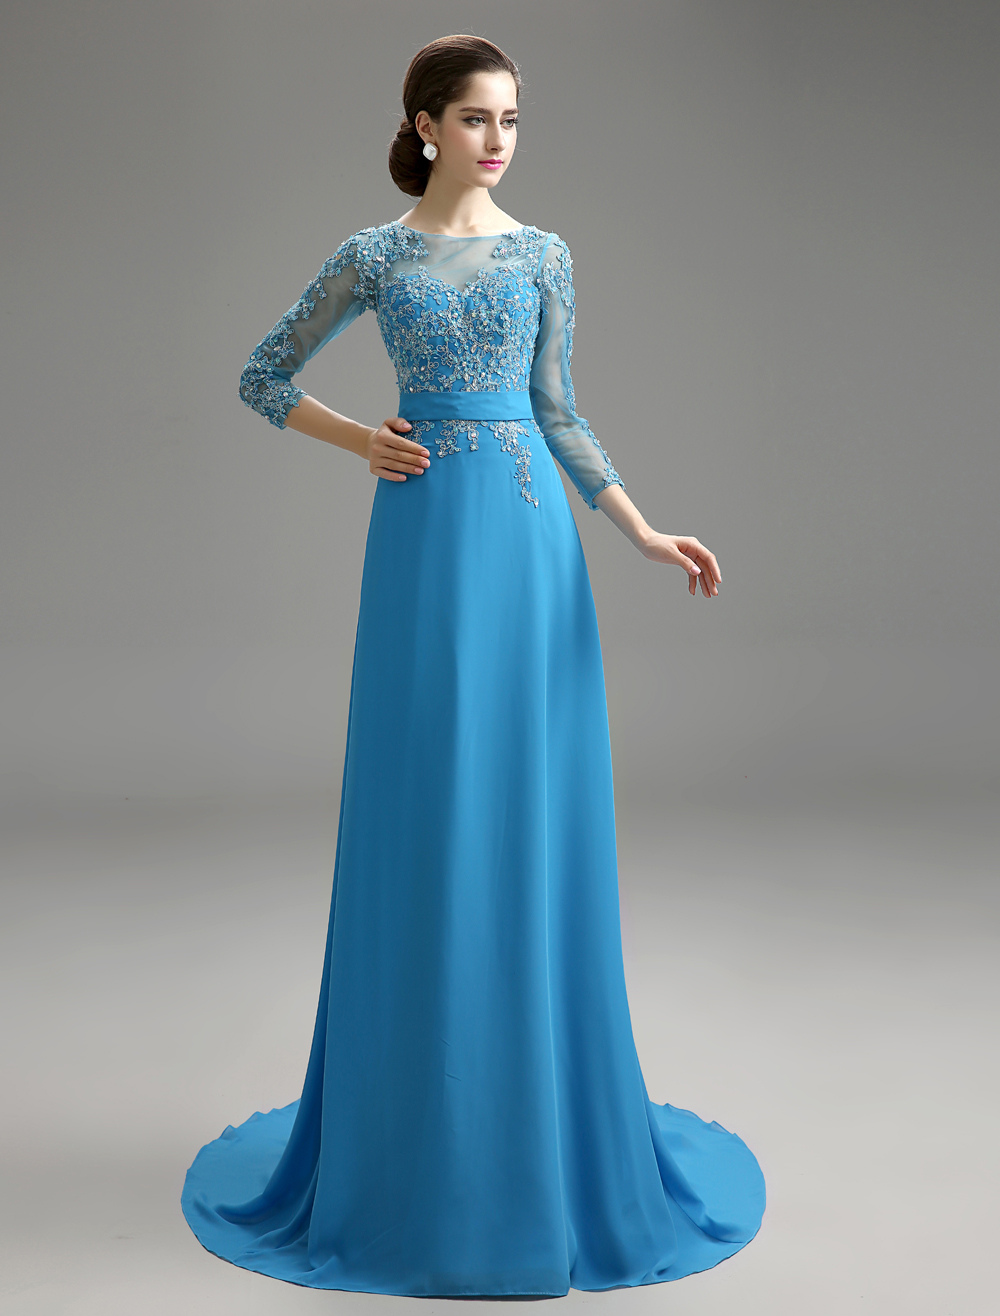 Teal Mother Of Bride Dress Applique Chiffon Backless Wedding Party Dress With Brush Train